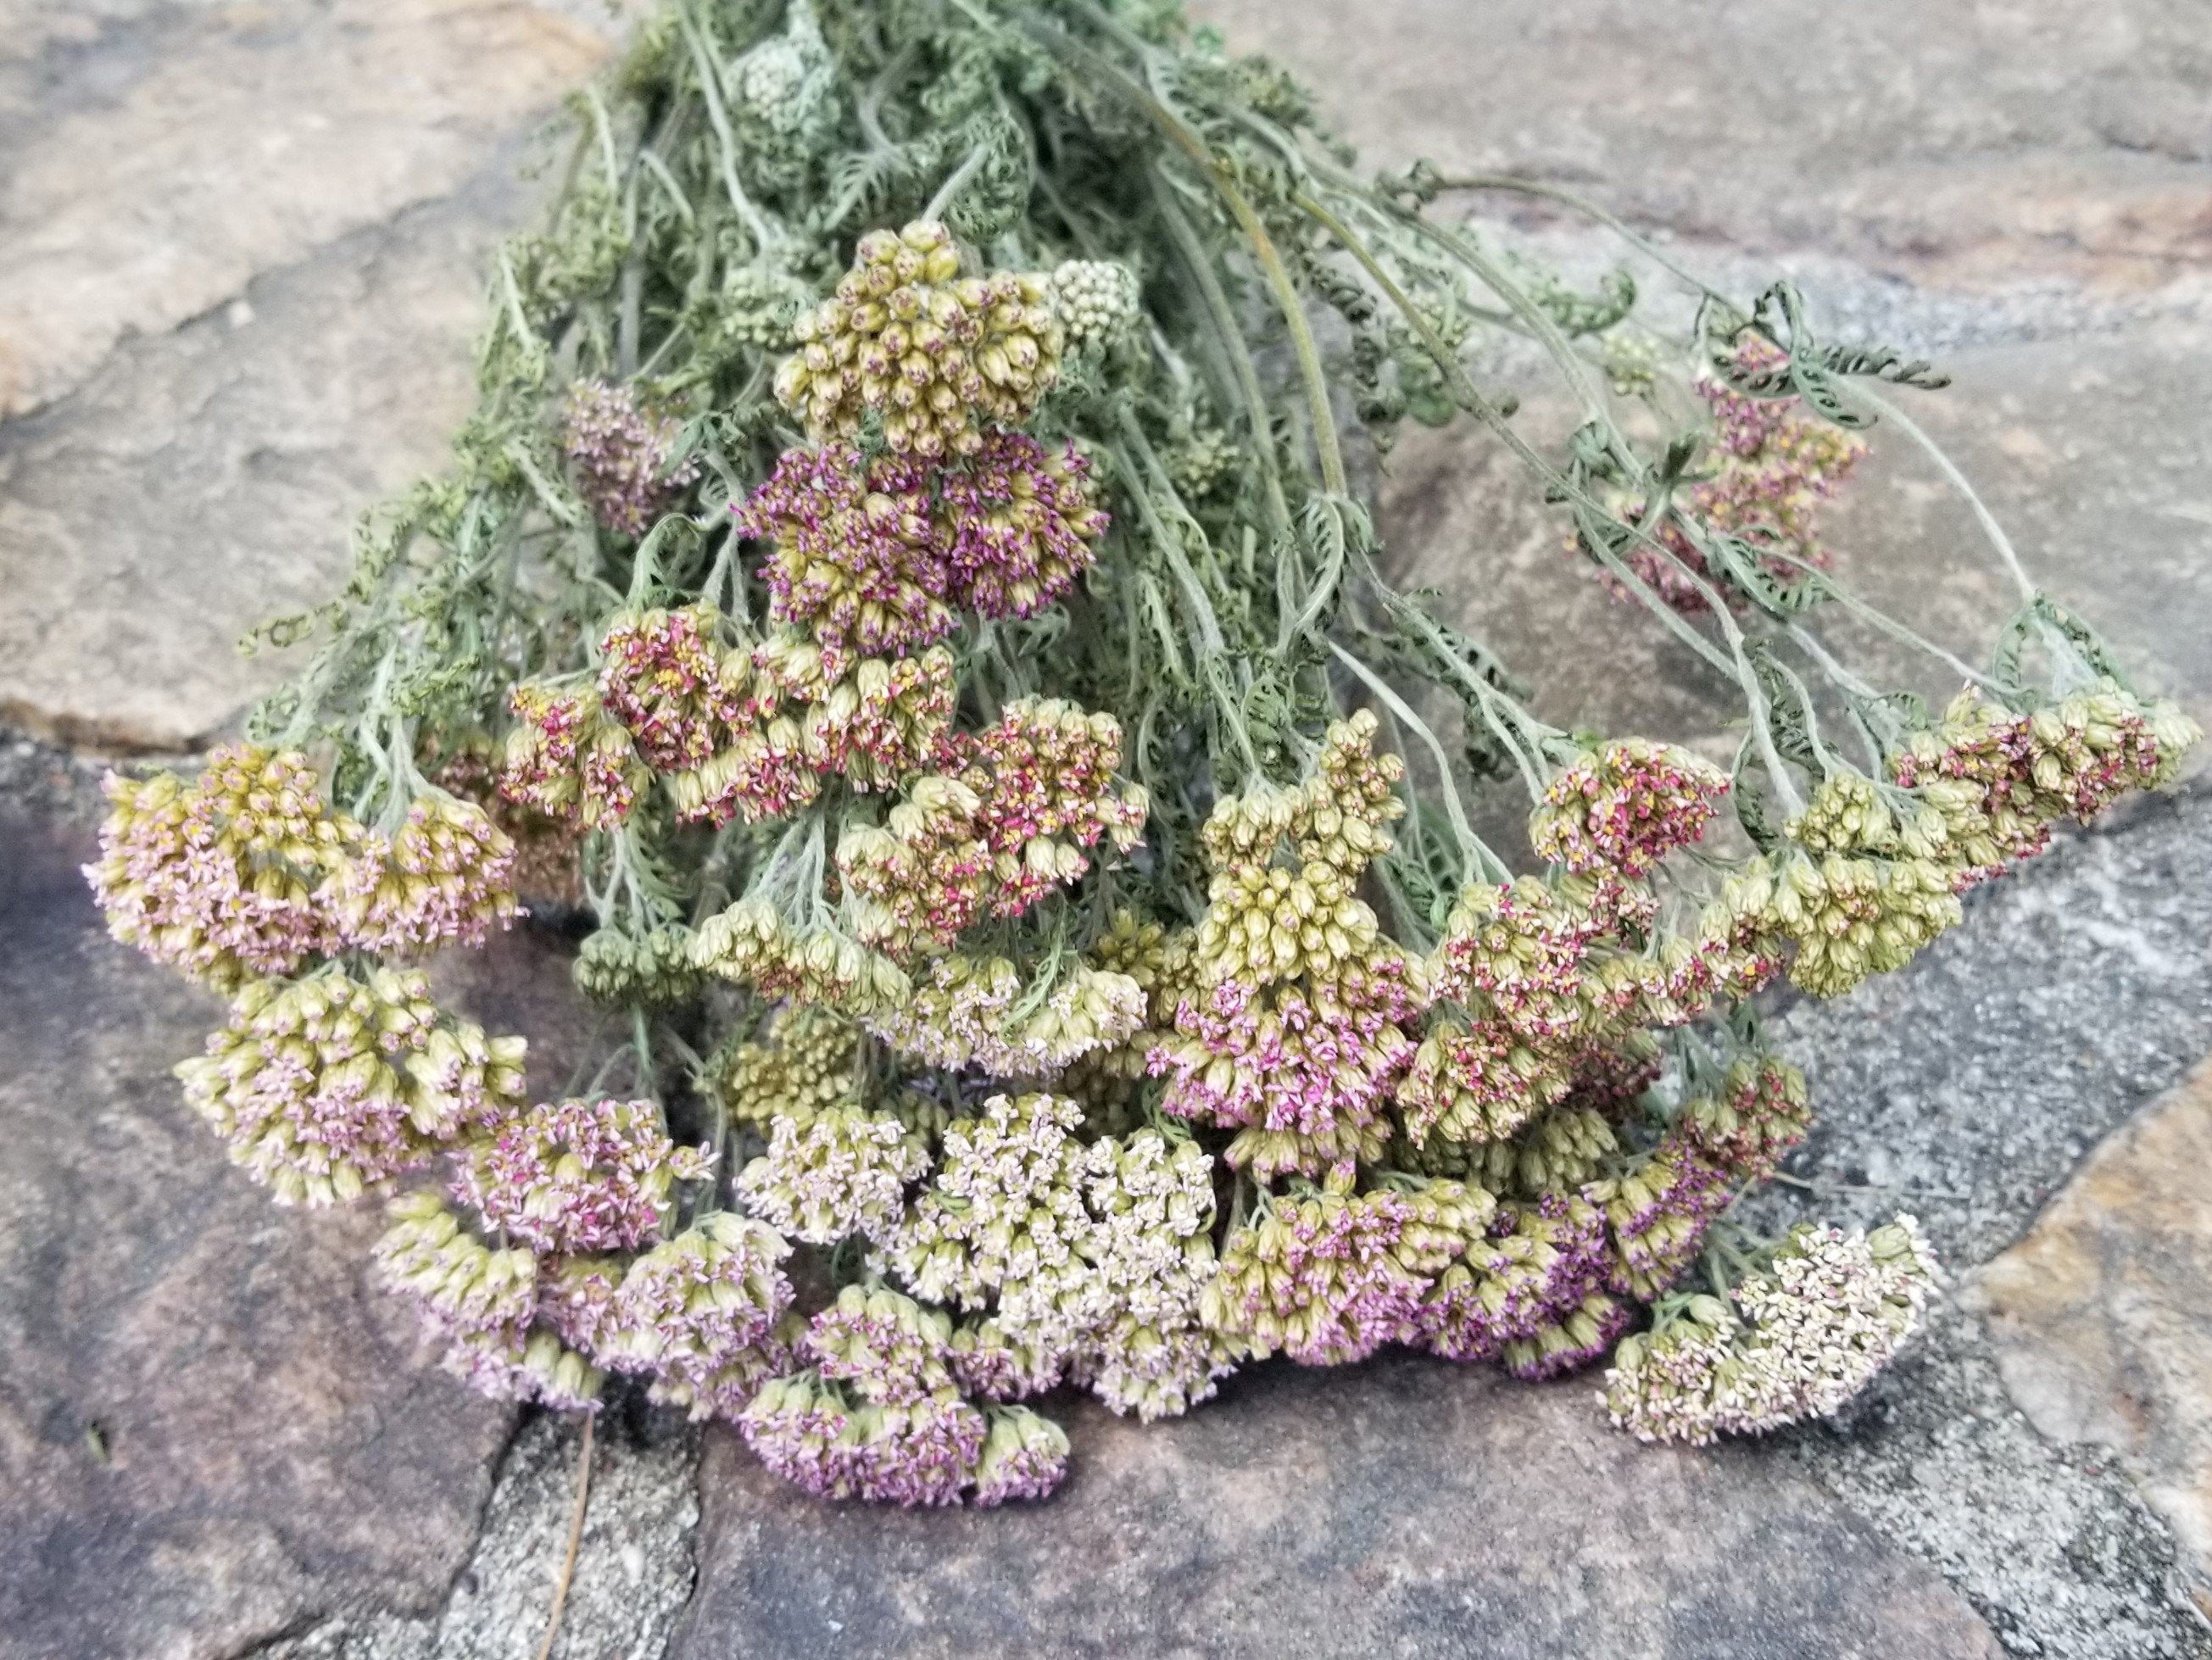 Lavender Yarrow Dried Yarrow Purple Yarrow Dried Flowers Wildflowers Flower Bunch Flower Bouquet Achillea Millefolium Wild Herb Dried Flowers Dried Flower Bouquet Bunch Of Flowers